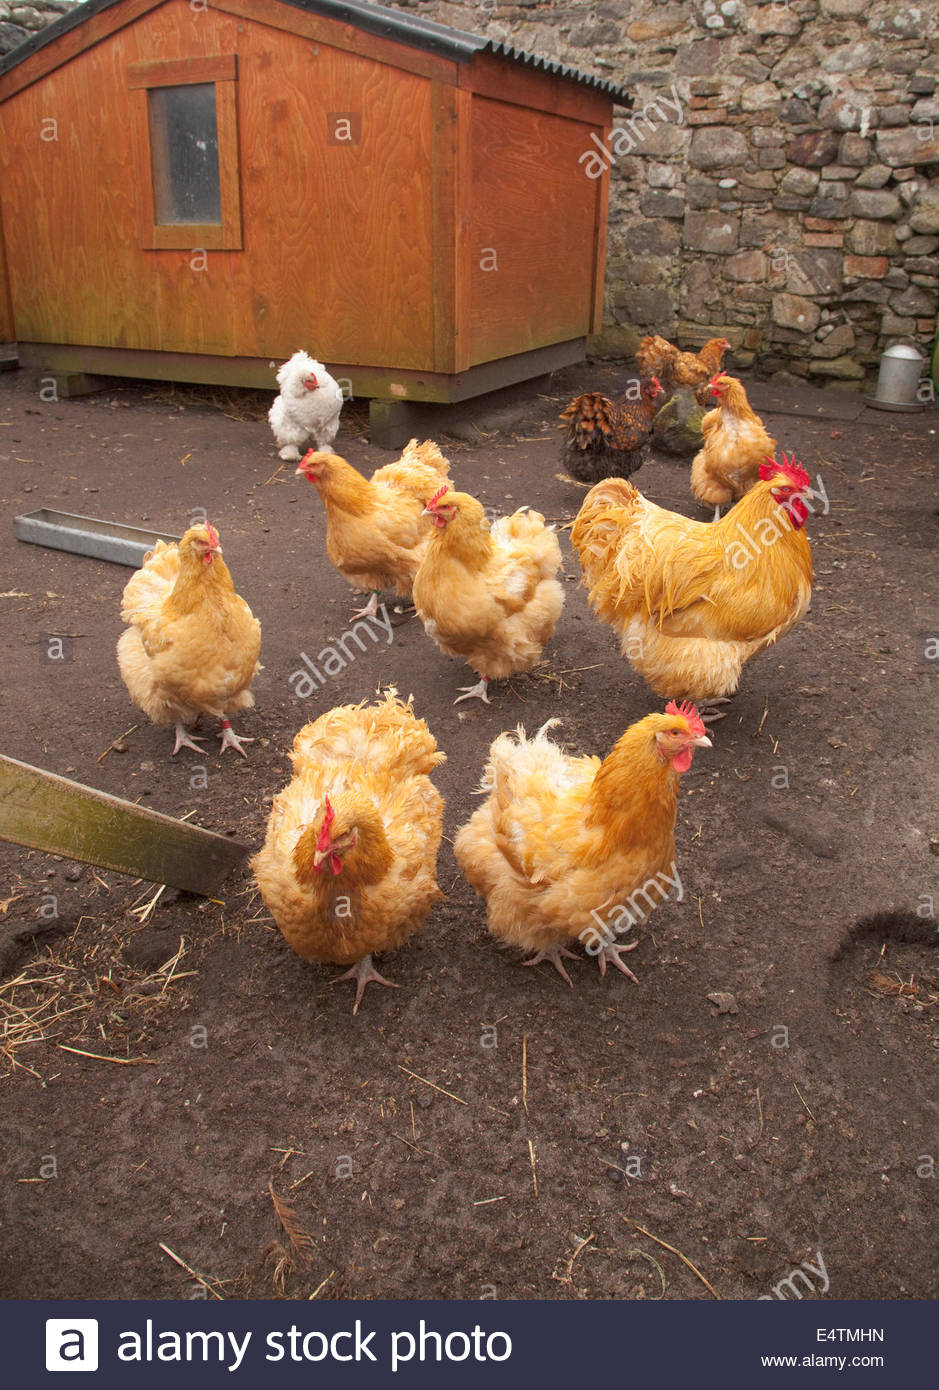 Free range hens at the Hebridean Woolshed at West Kilbride, Isle of South Uist, Outer Hebrides, Scotland. - Stock Image